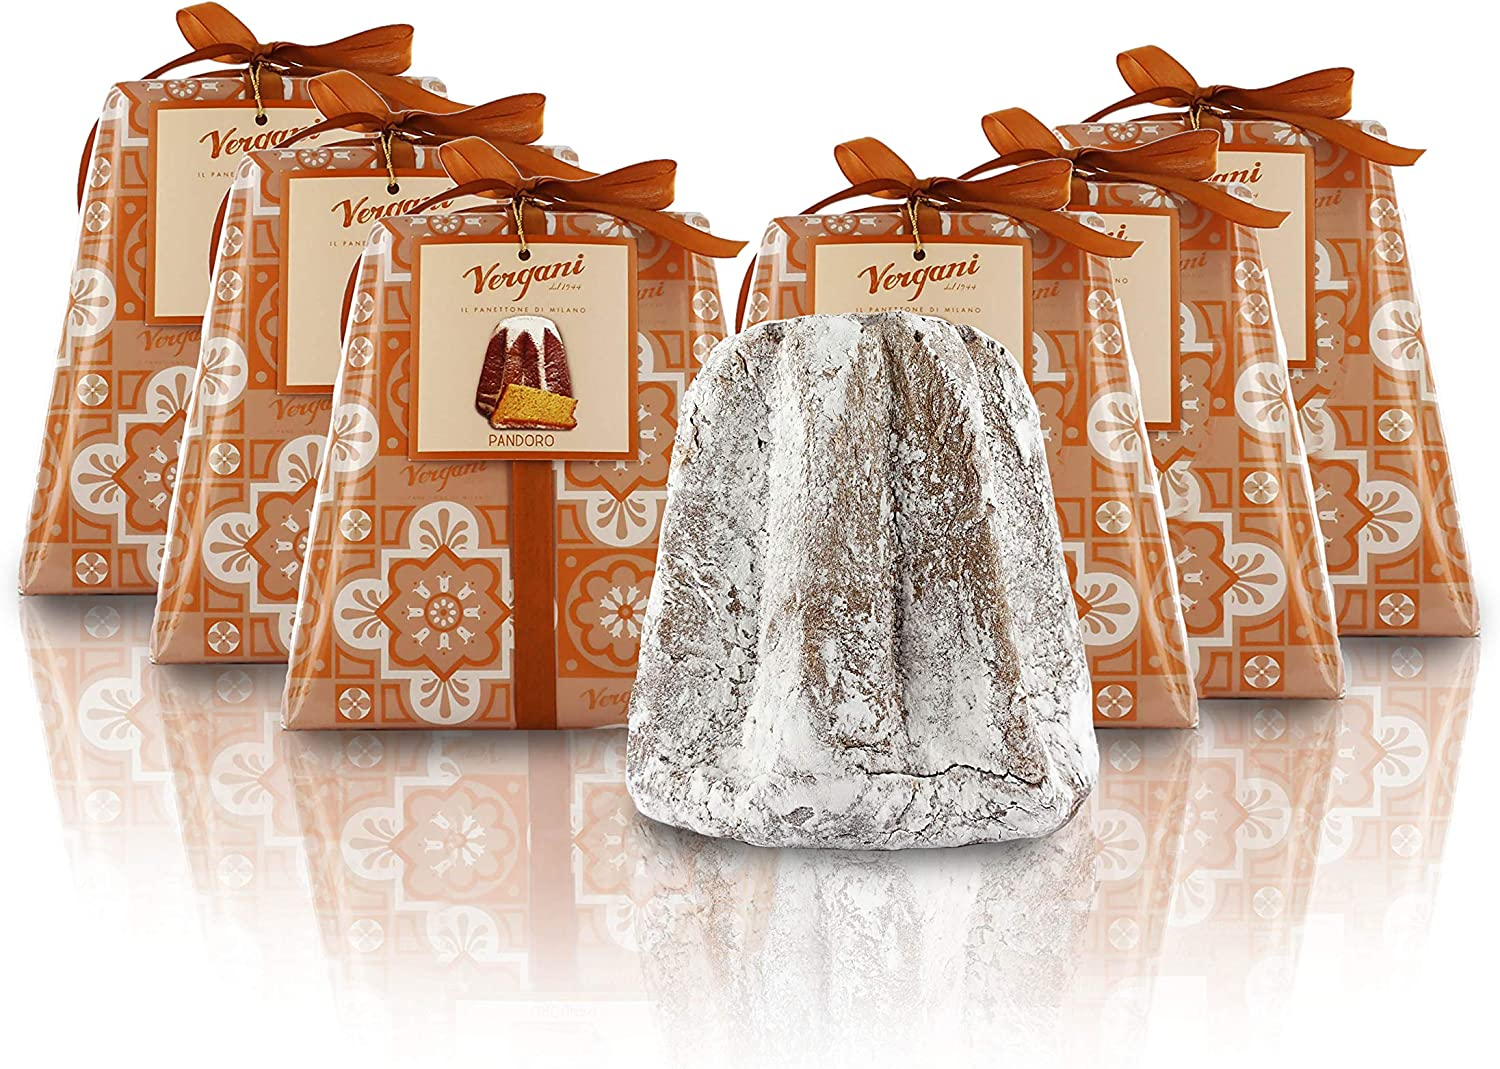 Vergani Classic Pandoro Baked in Milan (Italy), Hand-Wrapped, Traditional Recipe - 1kg / 2lb 3.2oz - Pack of 6 Cakes